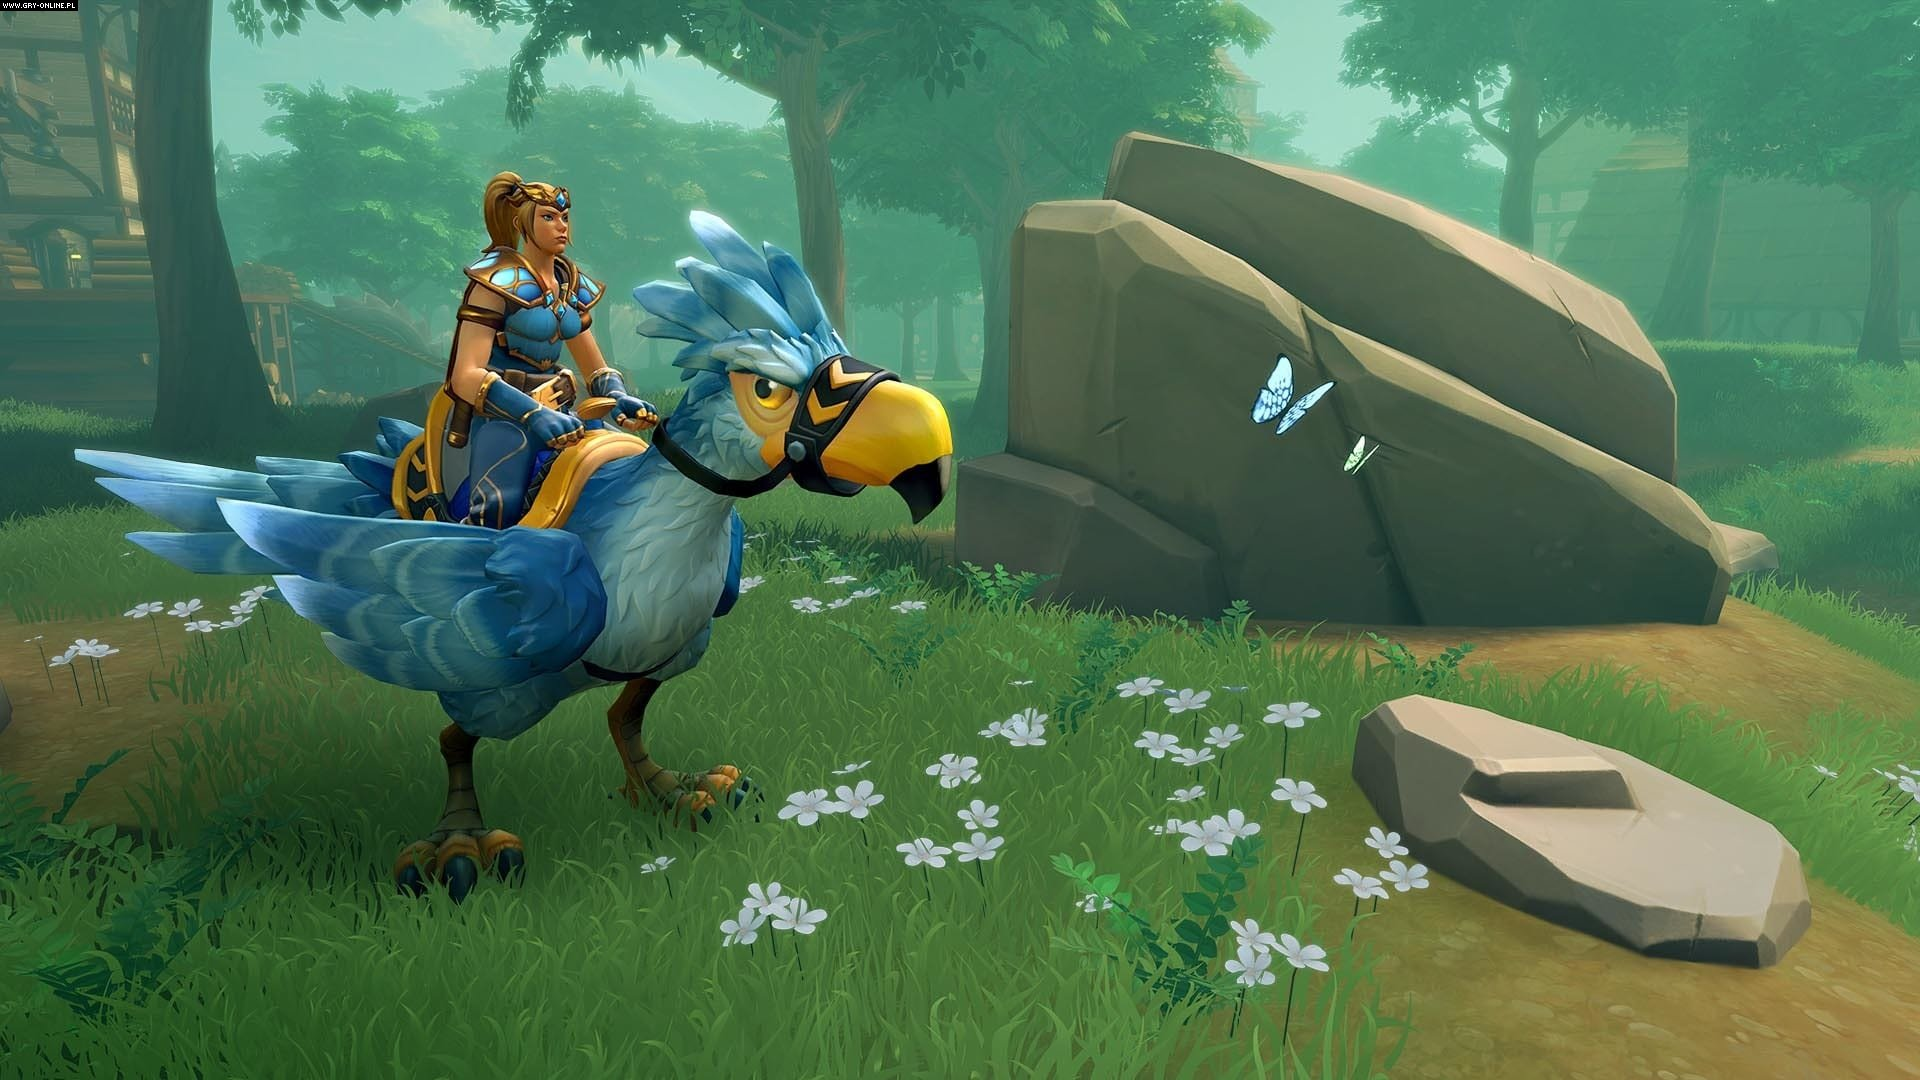 Realm Royale PC, PS4, XONE Games Image 1/16, Hi-Rez Studios